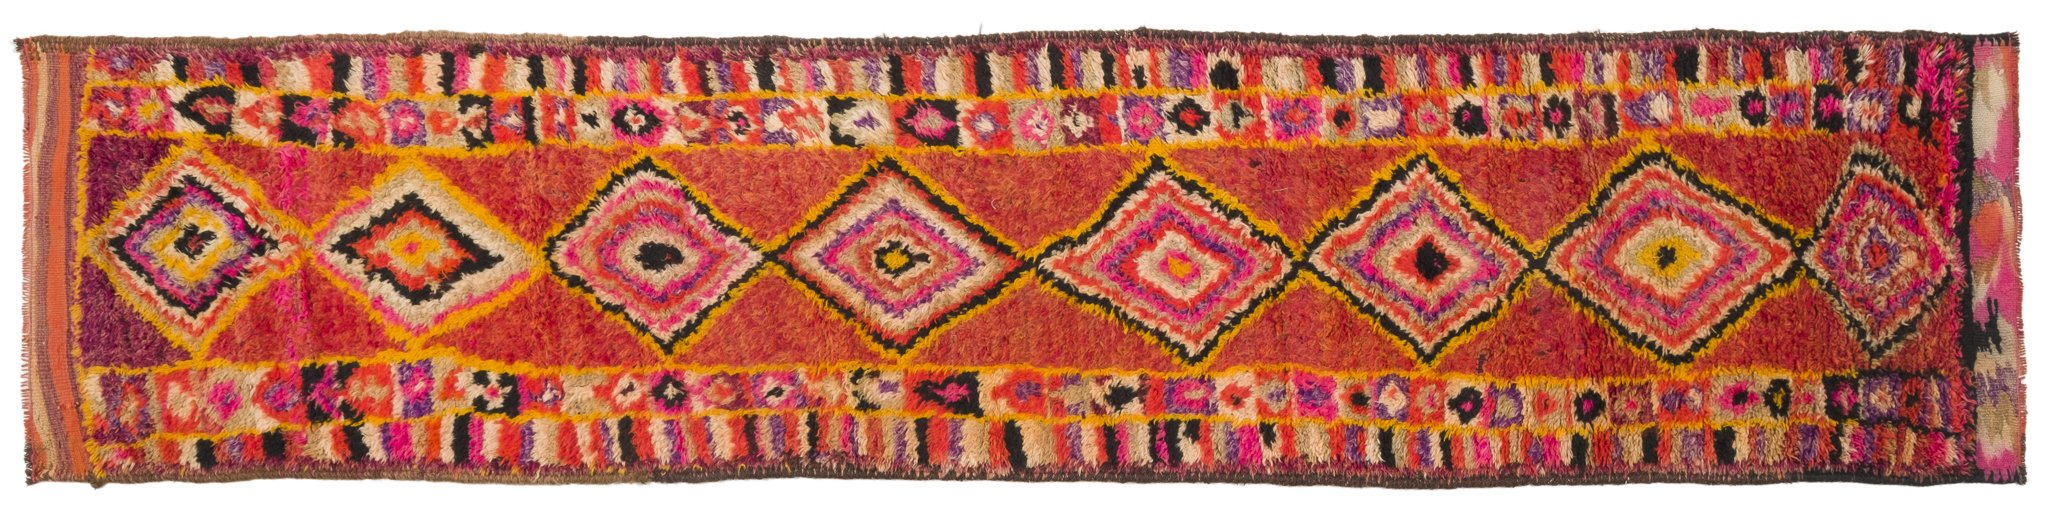 Vintage Turkish Runner Rug Adalsteinn